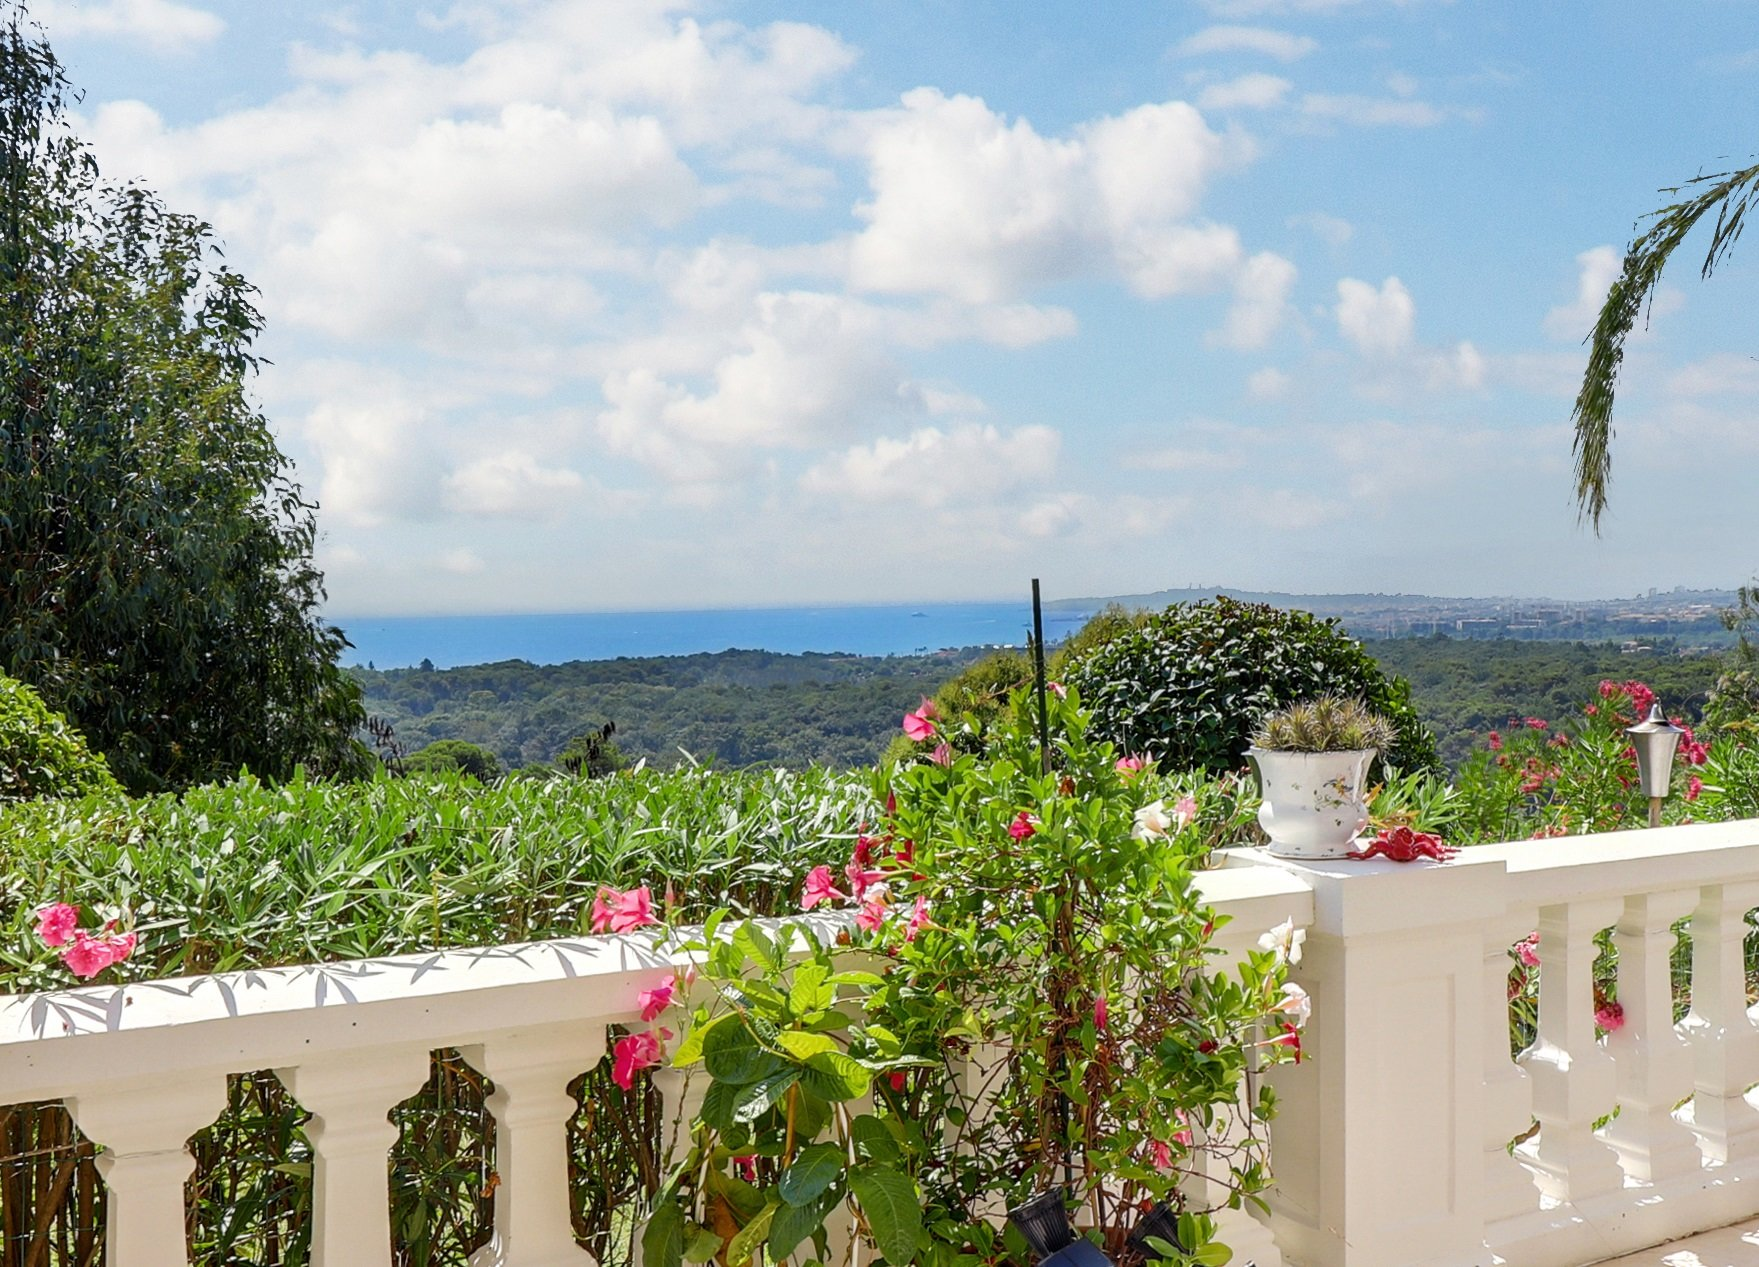 LES HAUTS DE VAUGRENIER  - LARGE DUPLEX APARTMENT WITH SEAVIEW IN SOUGHT AFTER DOMAIN